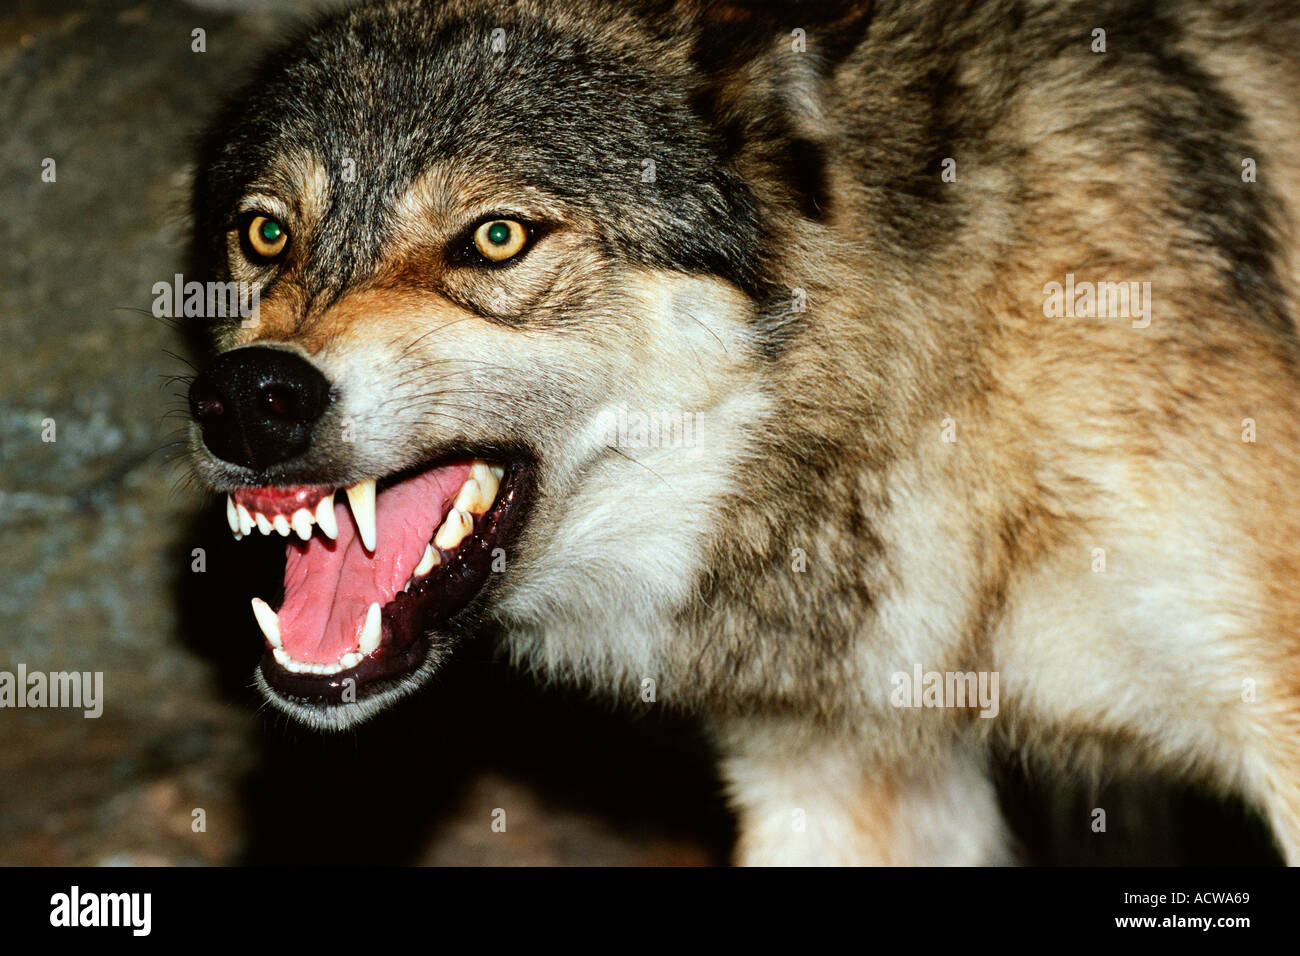 Snarling wolf - Stock Image